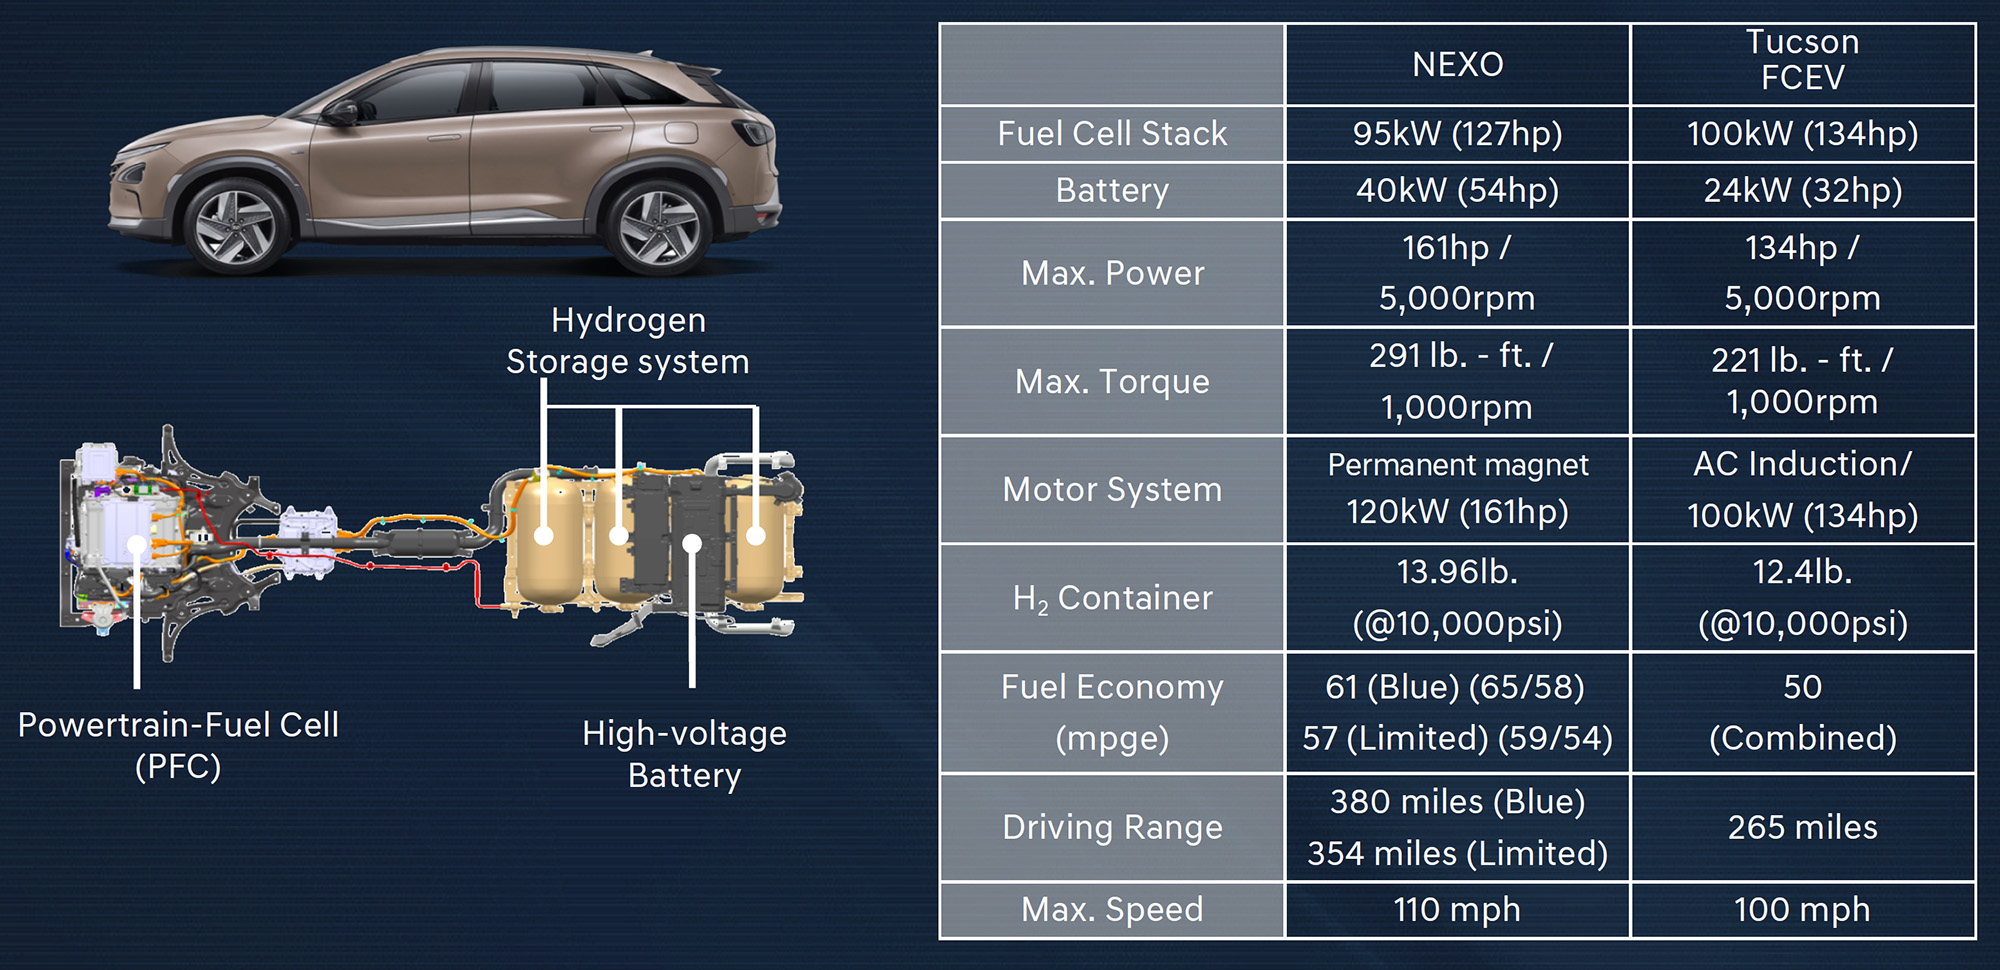 2019 Hyundai Nexo Fuel cell refinement SUV luxury